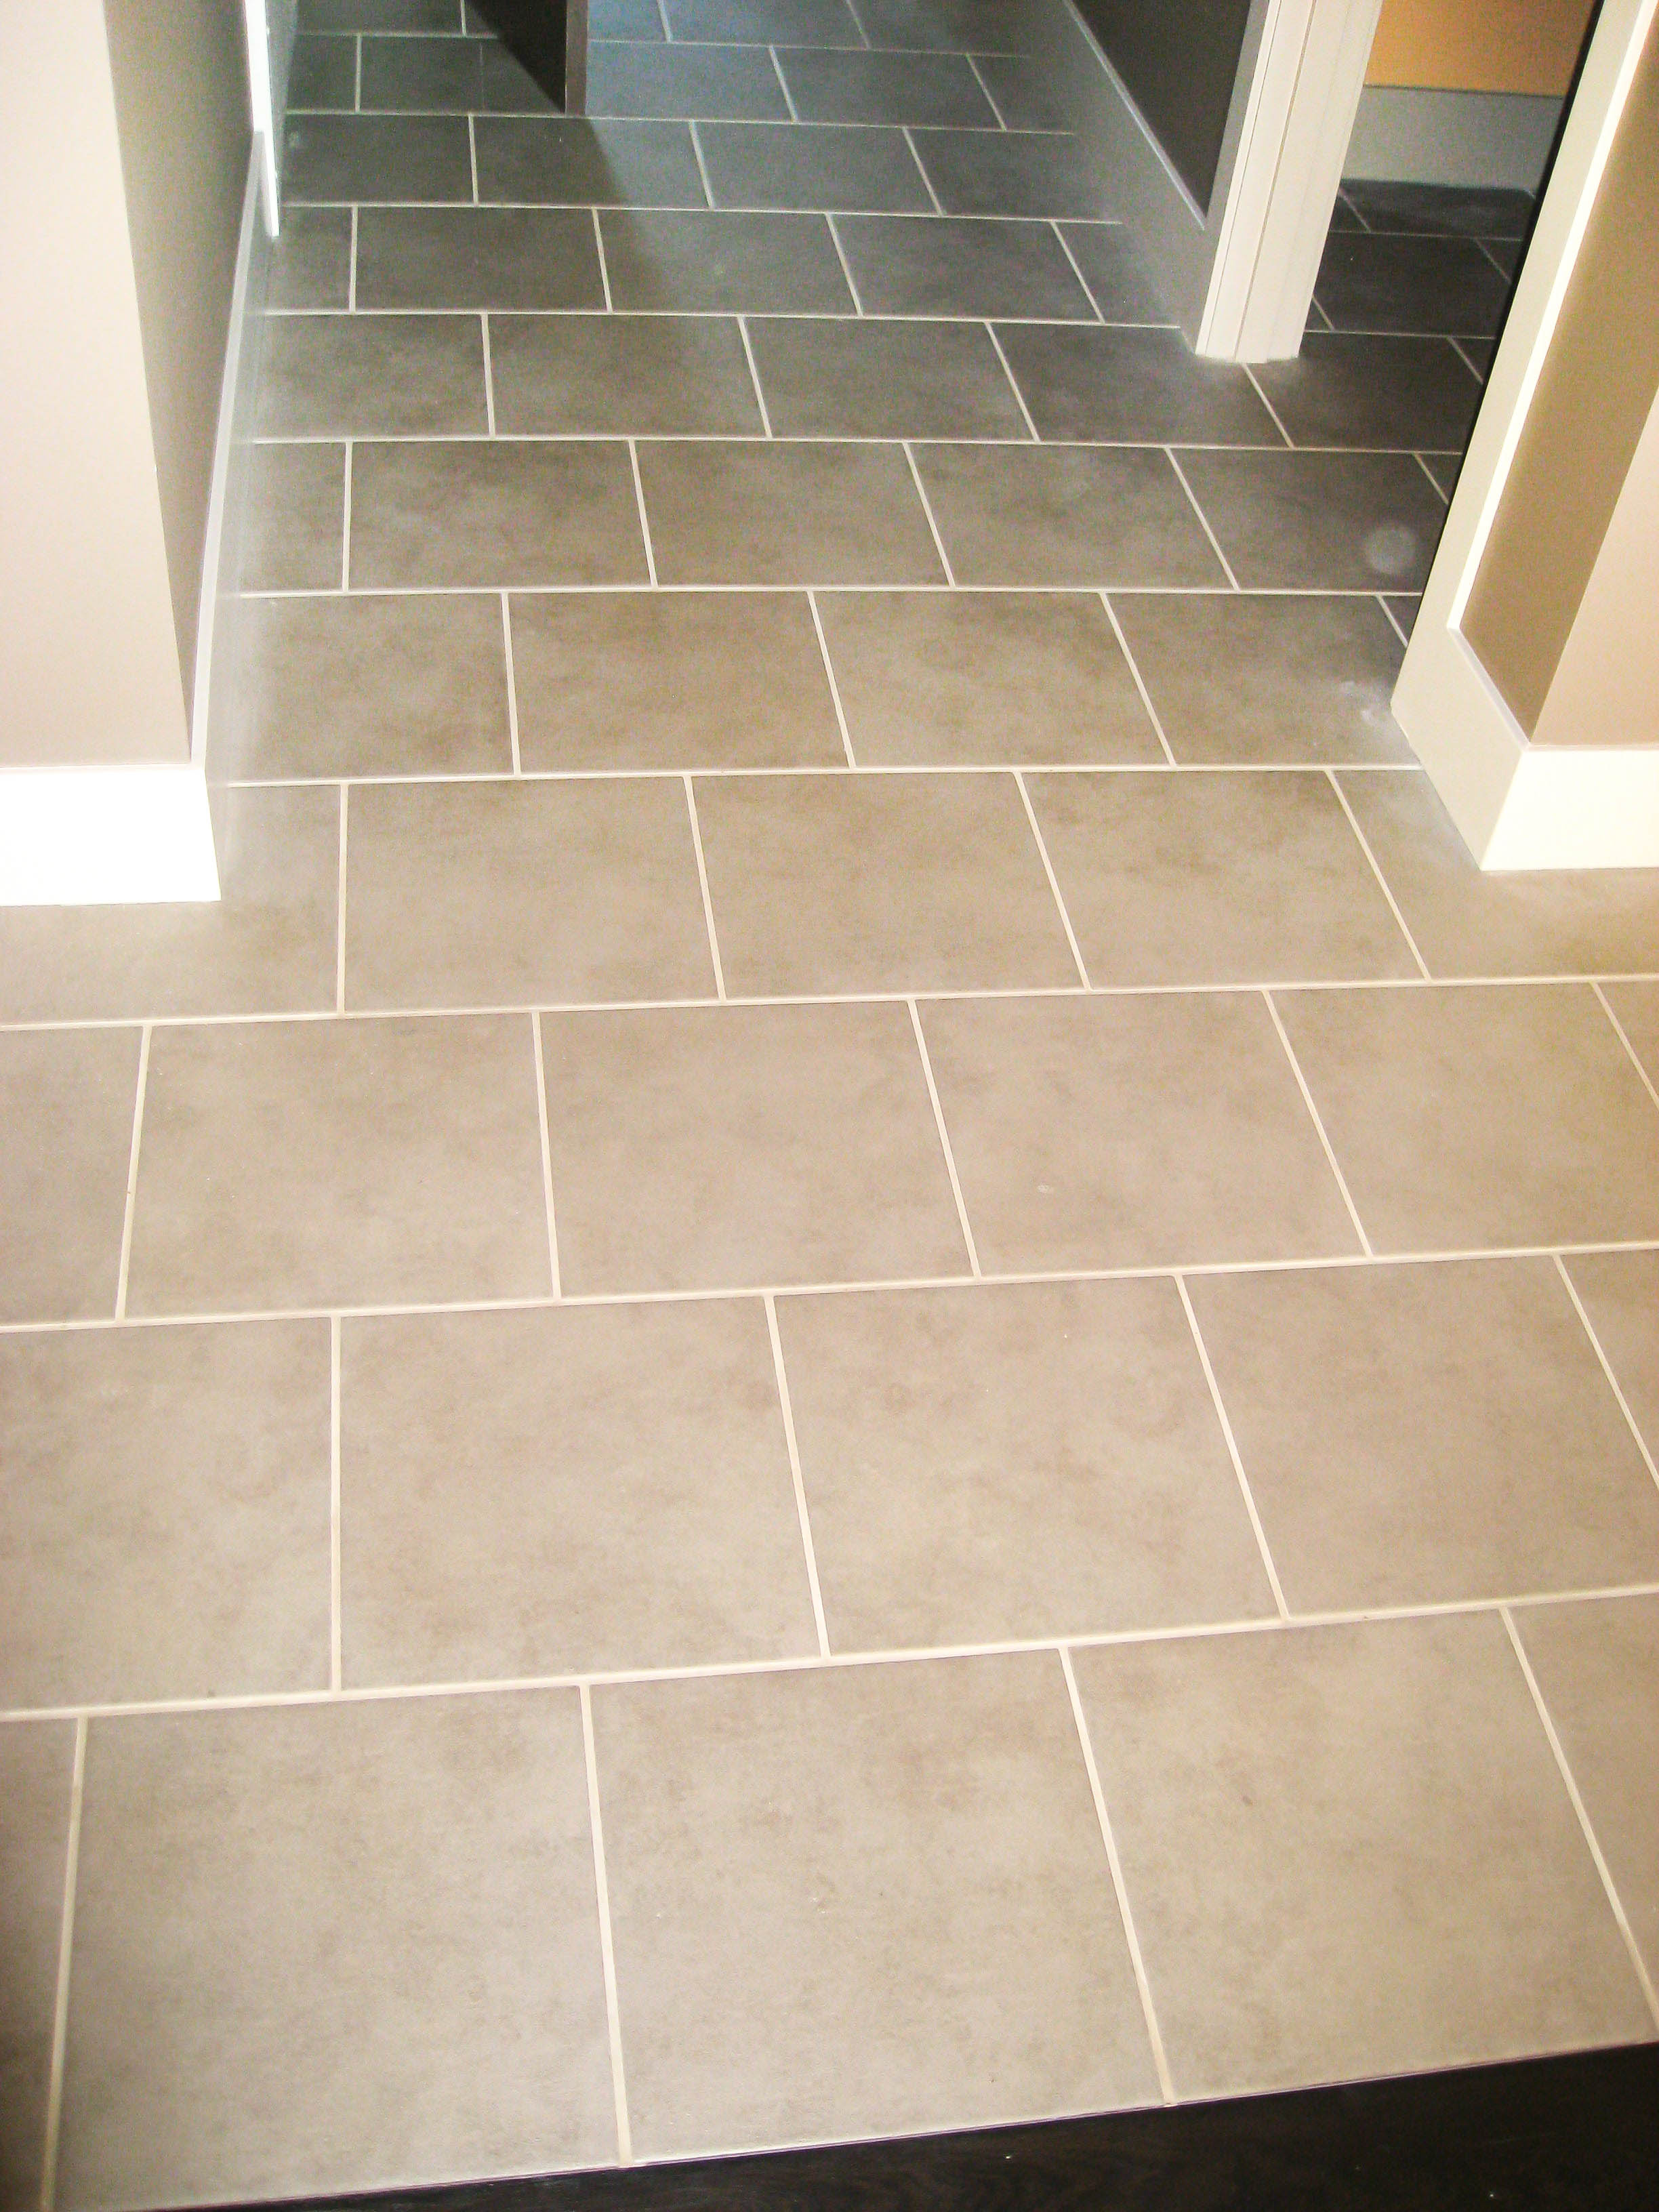 Tile Floor Photos Gallery - Seattle Tile Contractor | IRC Tile Service